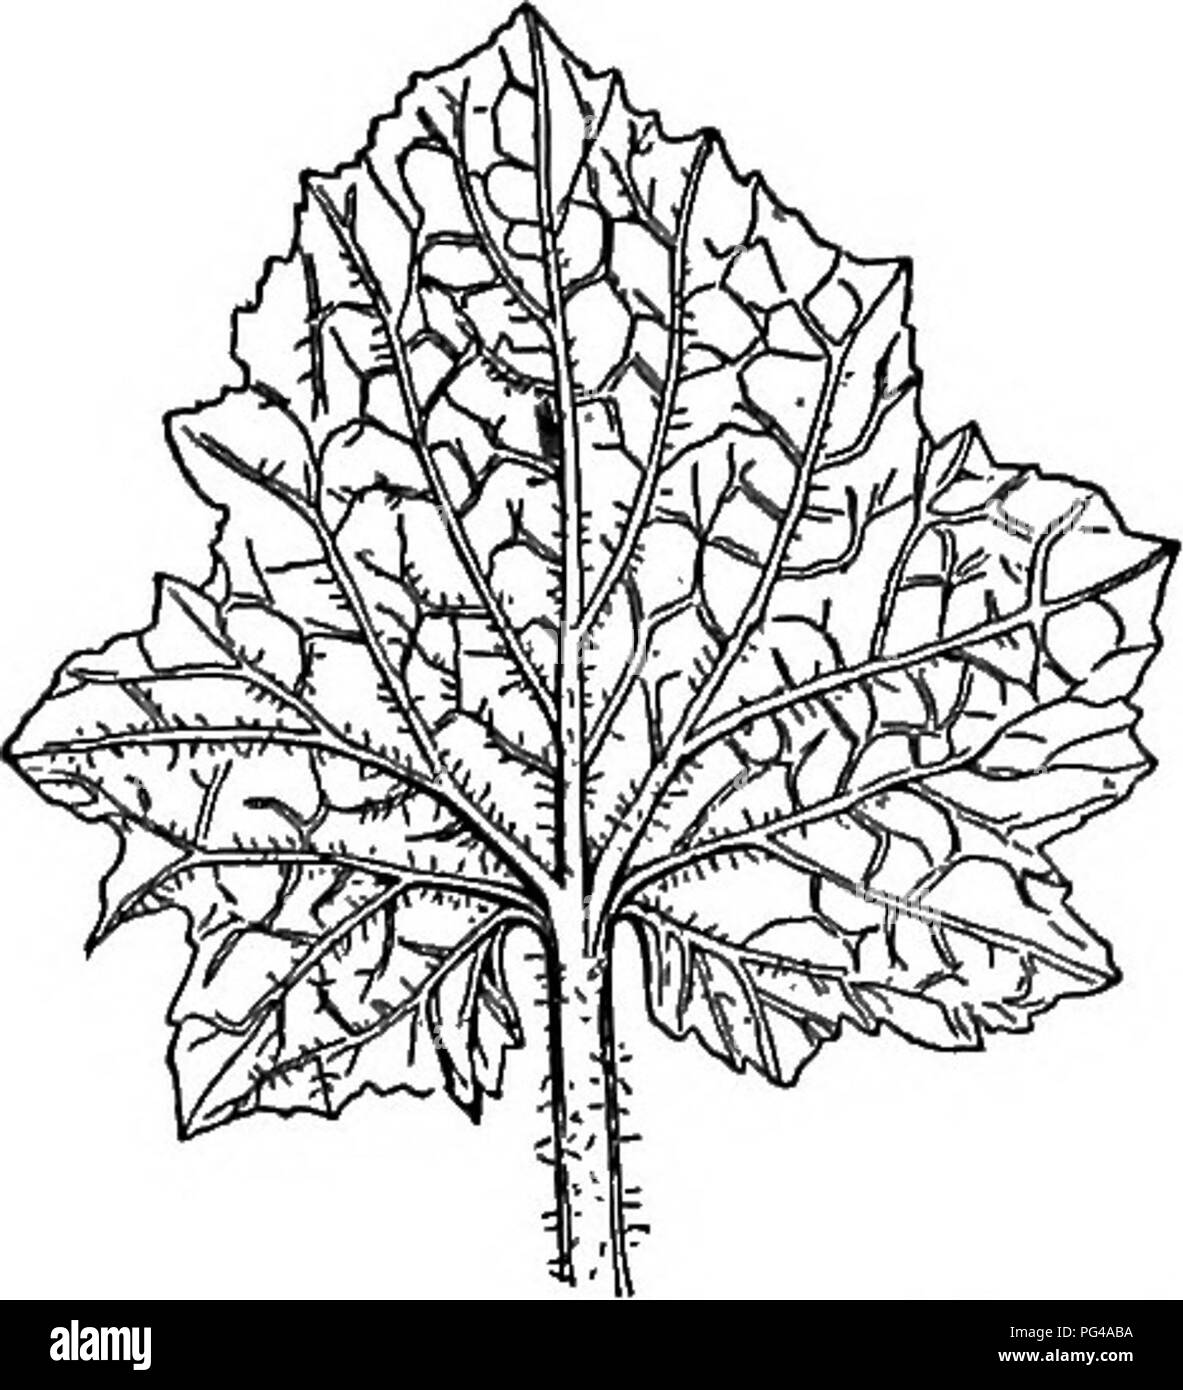 identifying plants stock photos identifying plants stock images Live Aquarium Plants Fish elements of botany botany botany 88 elements op botany leaves themselves